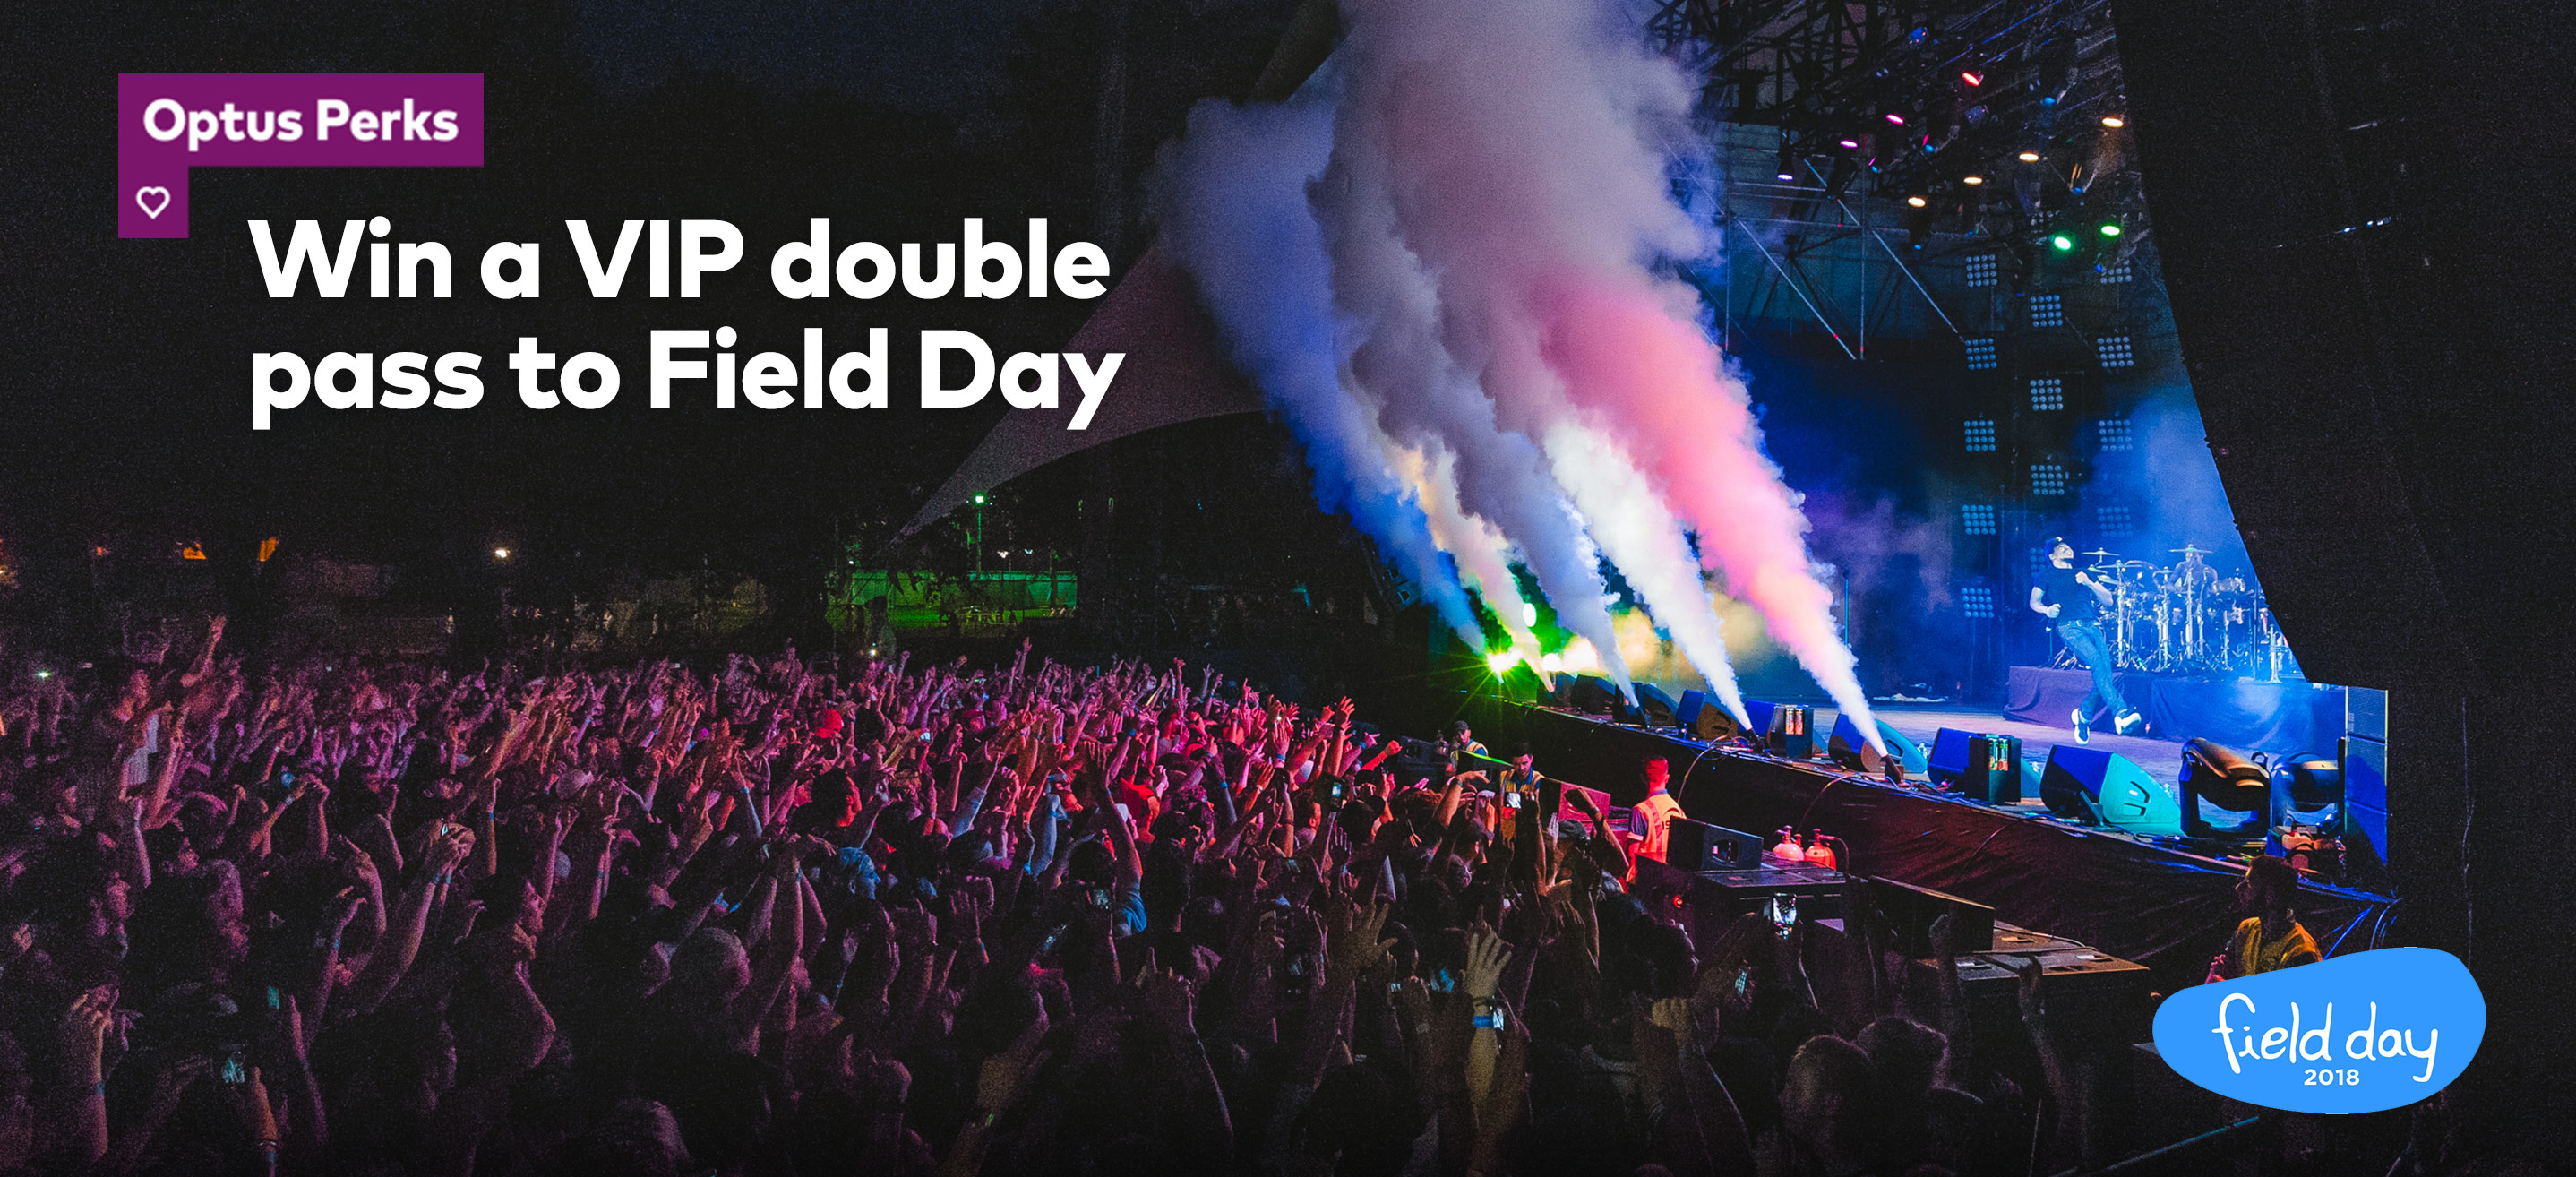 Win a Vip double pass to Field Day 2018